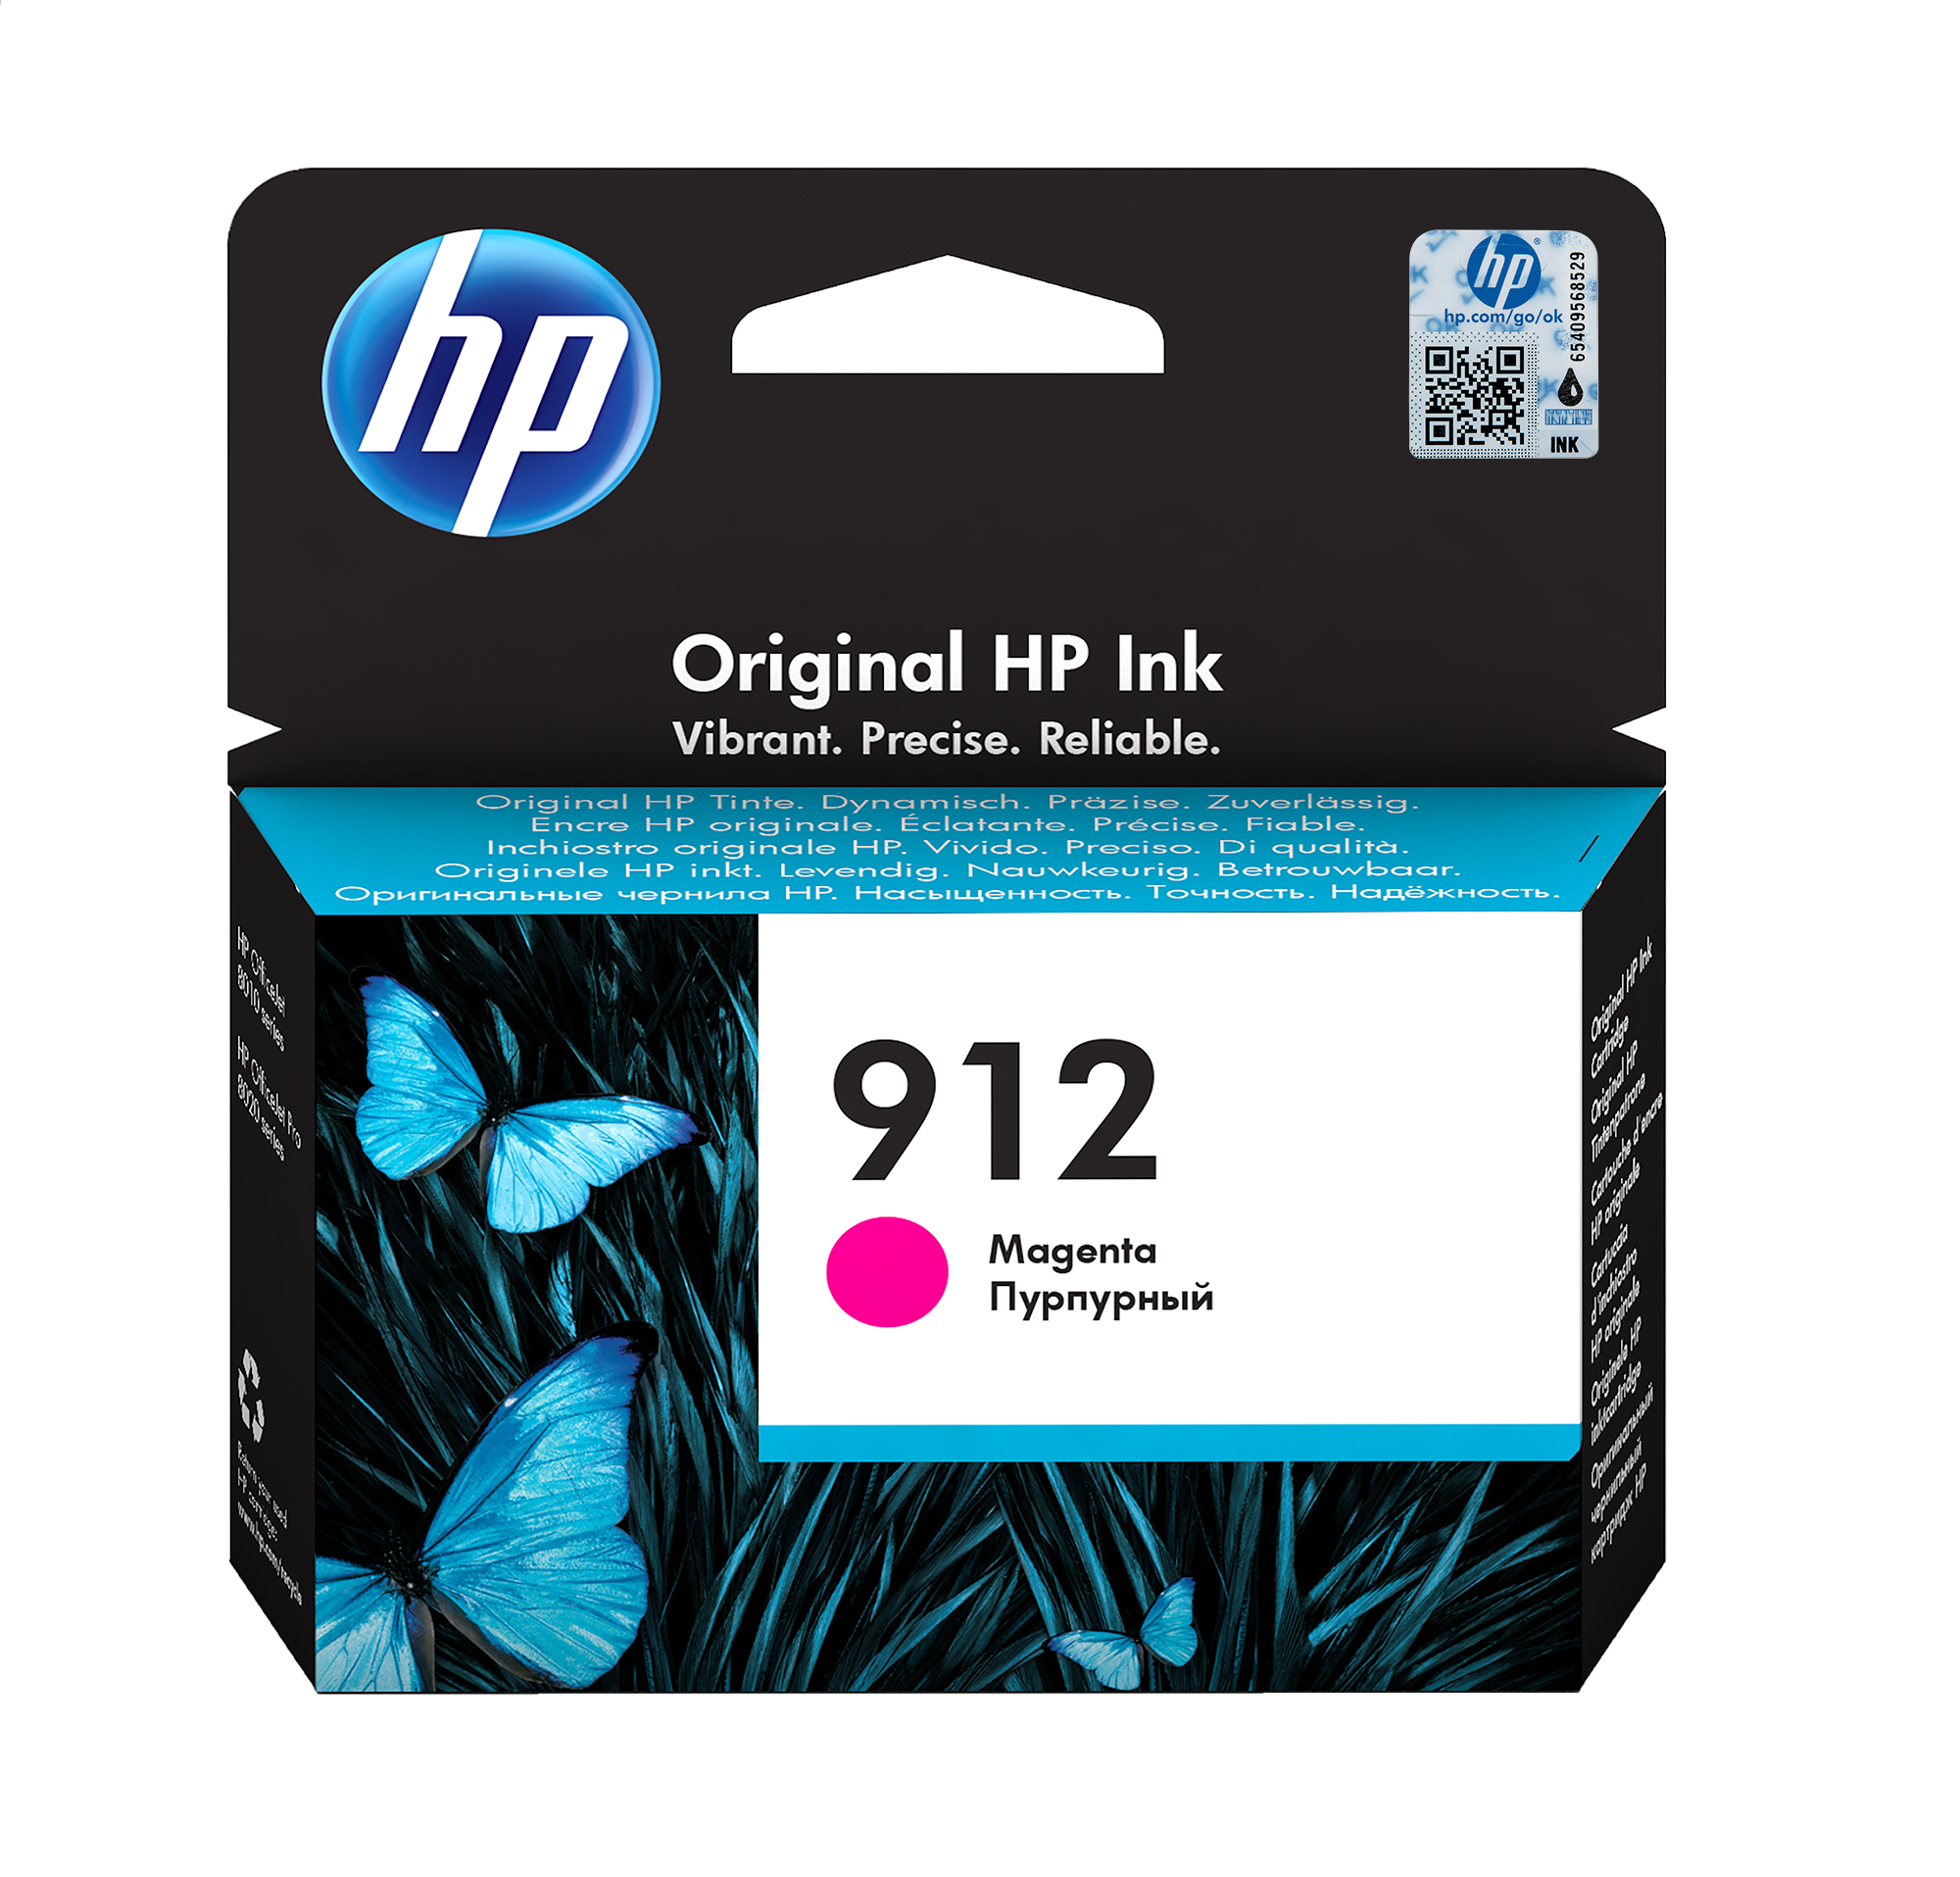 HP 912 magenta ink cartridge original